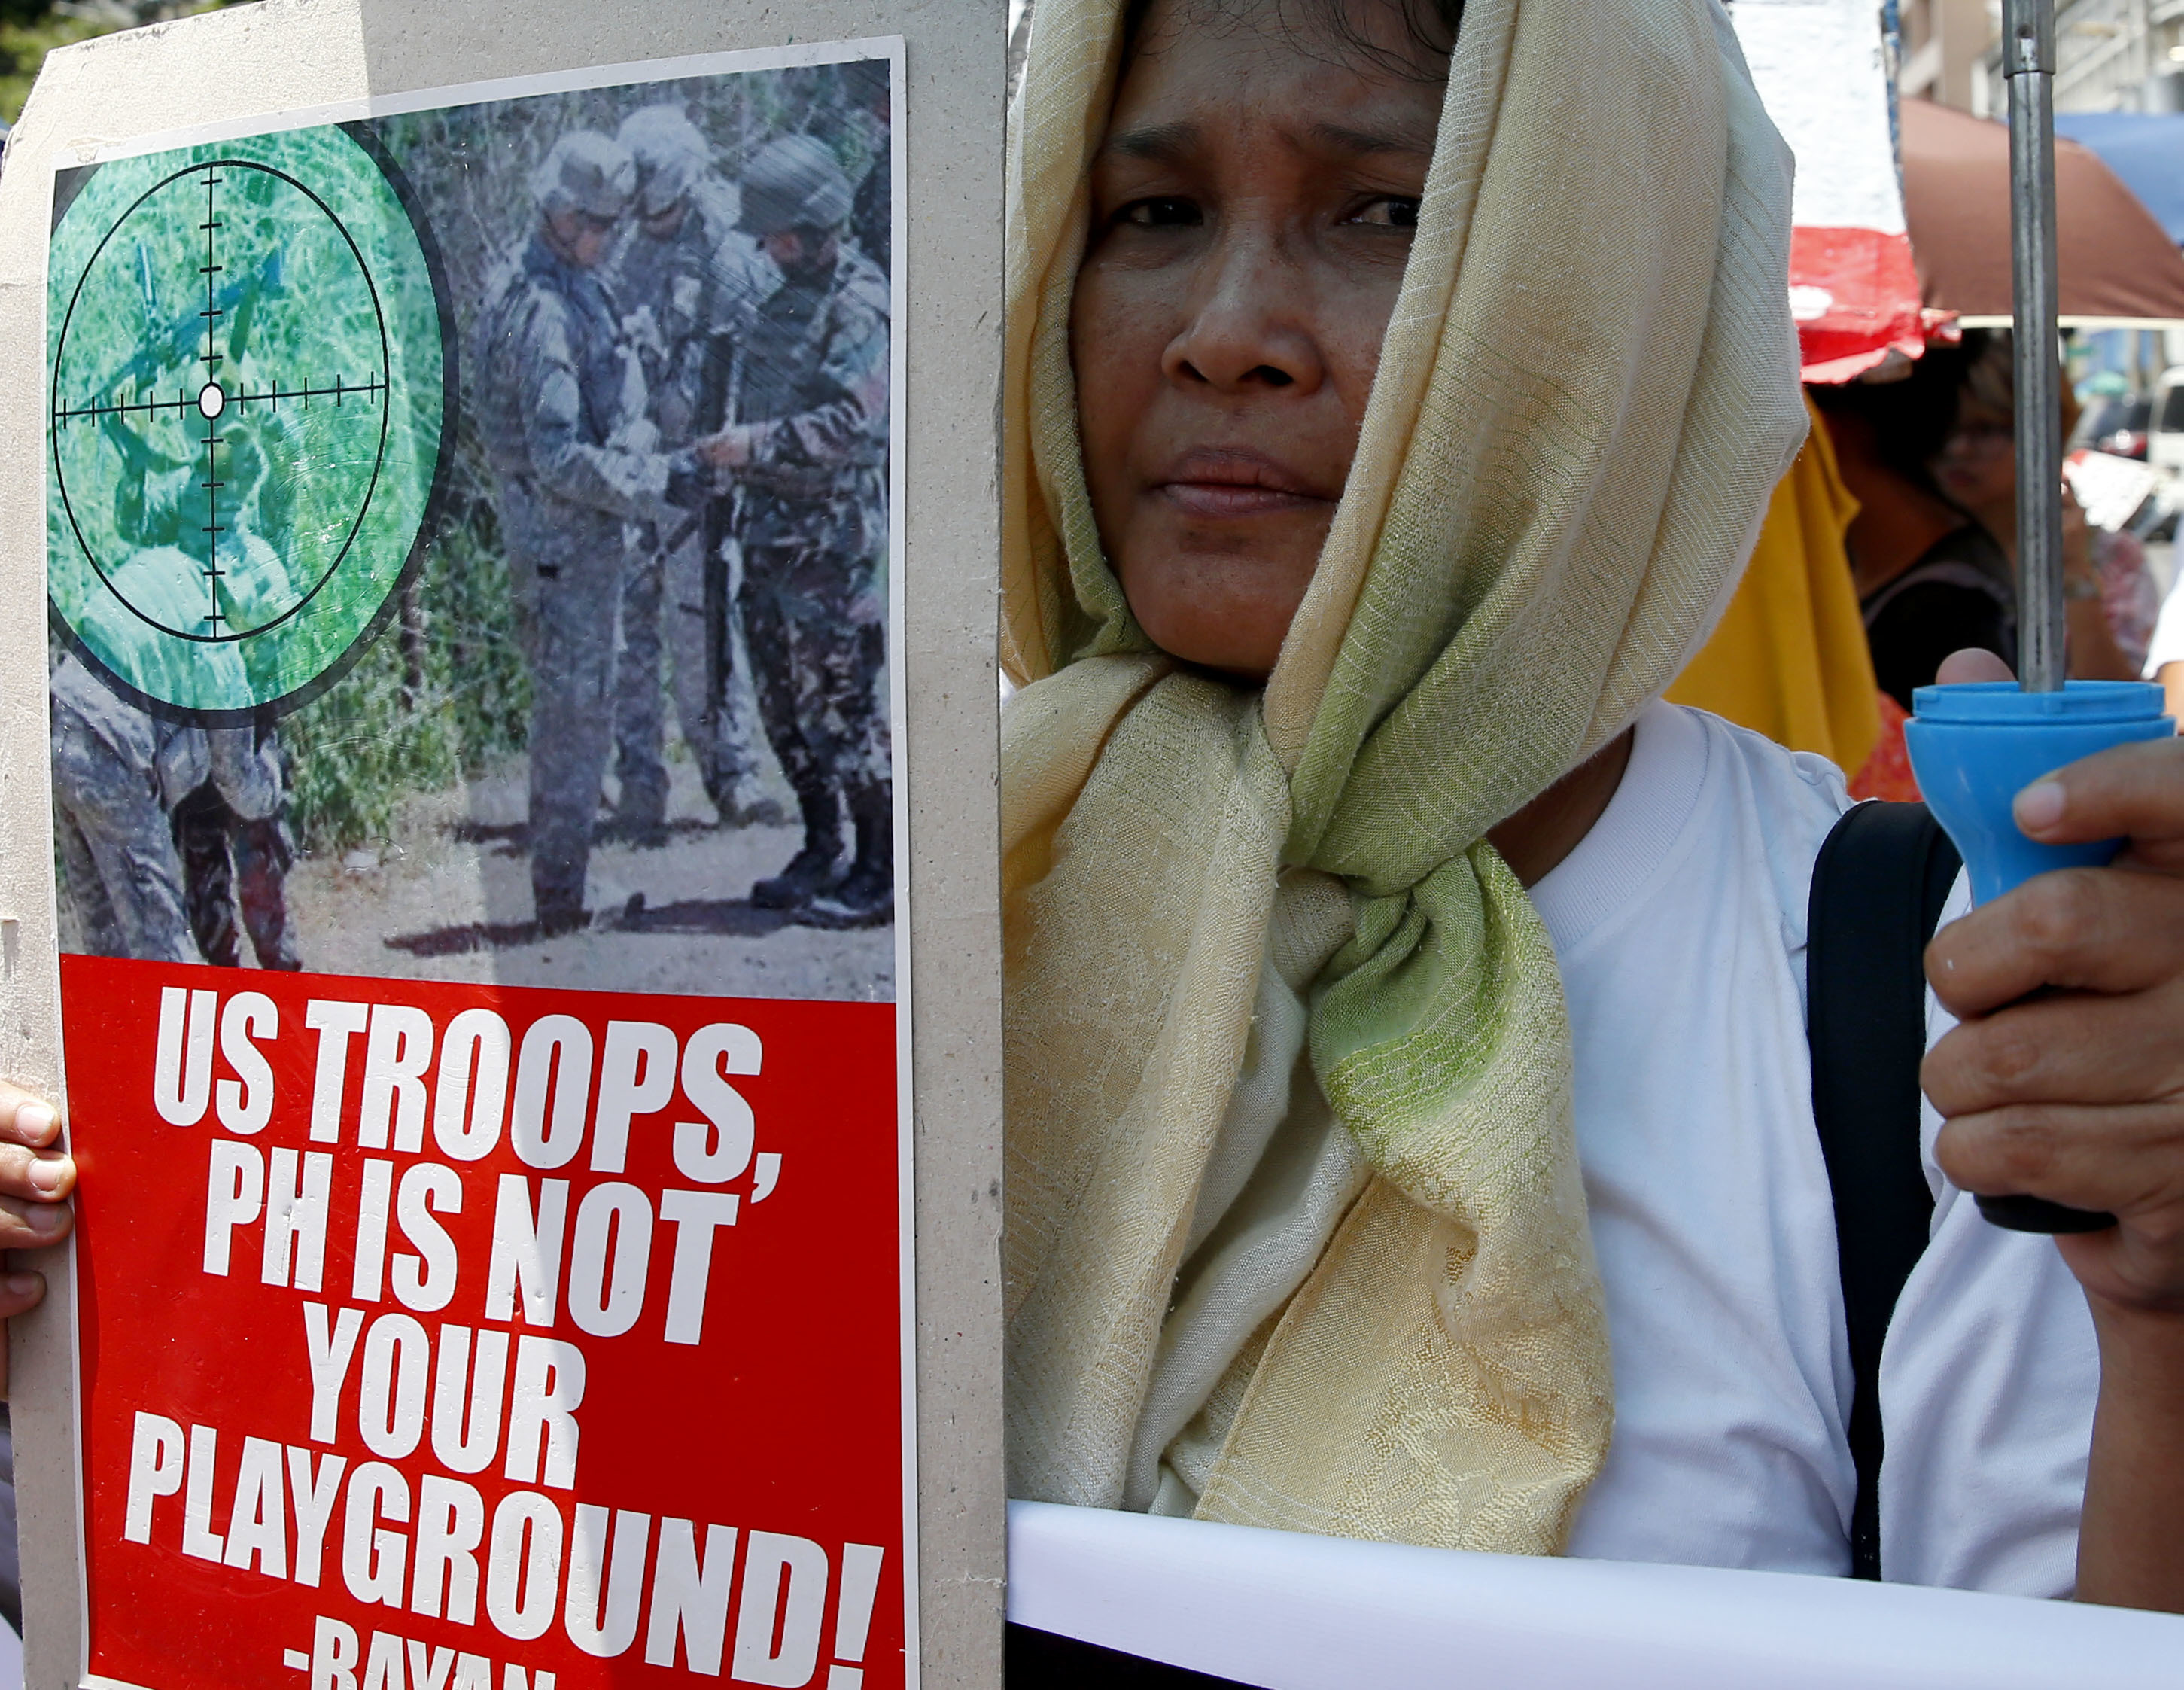 A protester holds a placard during a rally near the U.S. Embassy to denounce the U.S. military's role in the ongoing battle between Government forces and Muslim militants who laid siege to Marawi city in southern Philippines for three weeks now Monday, June 12, 2017 in Manila, Philippines. The protesters also denounced President Rodrigo Duterte's declaration of Martial Law in the whole region of Mindanao in southern Philippines.(AP Photo/Bullit Marquez)